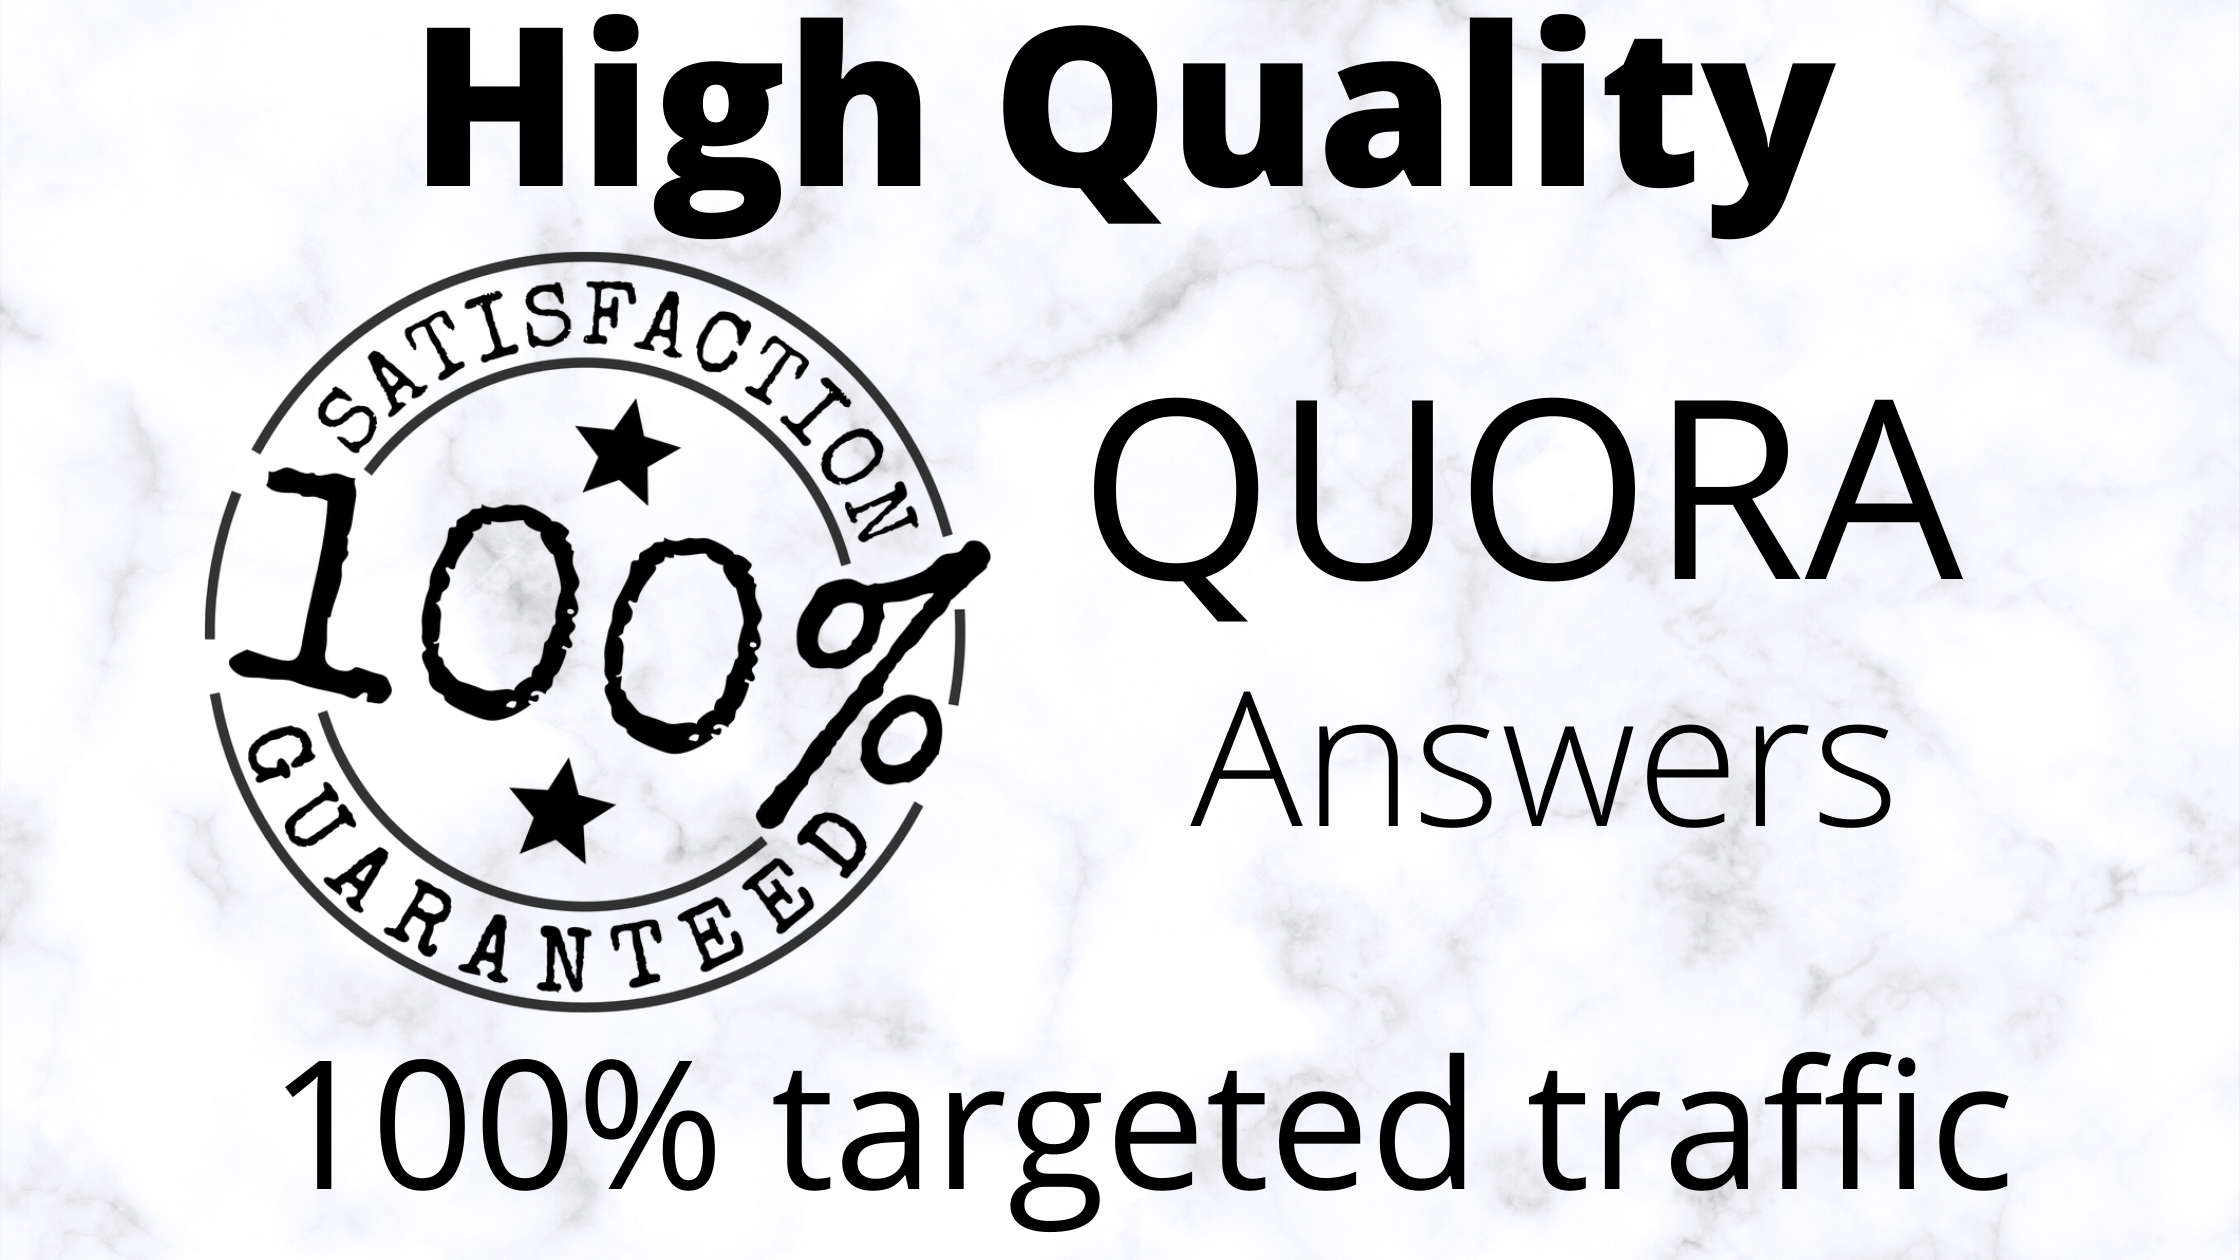 Guaranteed Traffic by 30 High Quality Quora Answers. Trusted Marketing.